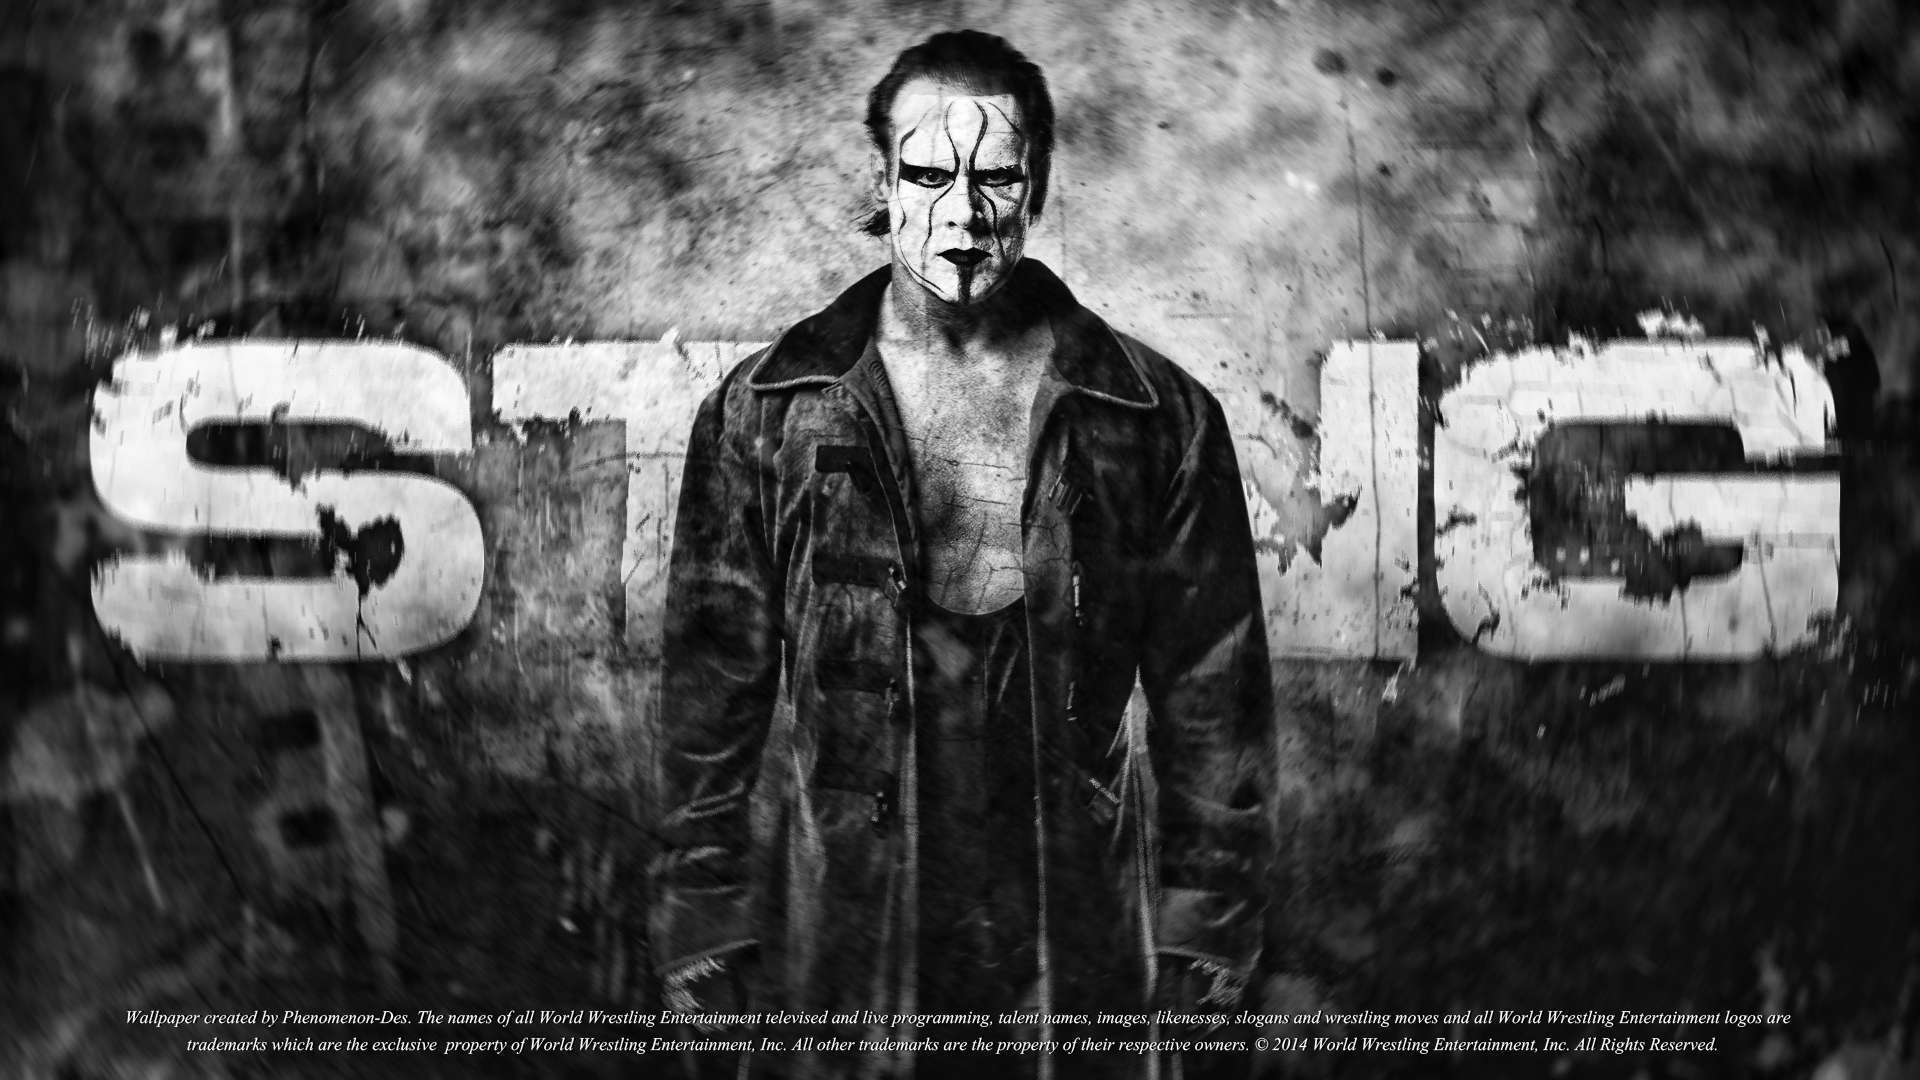 wwe wallpapers hd 2016 wallpaper cave